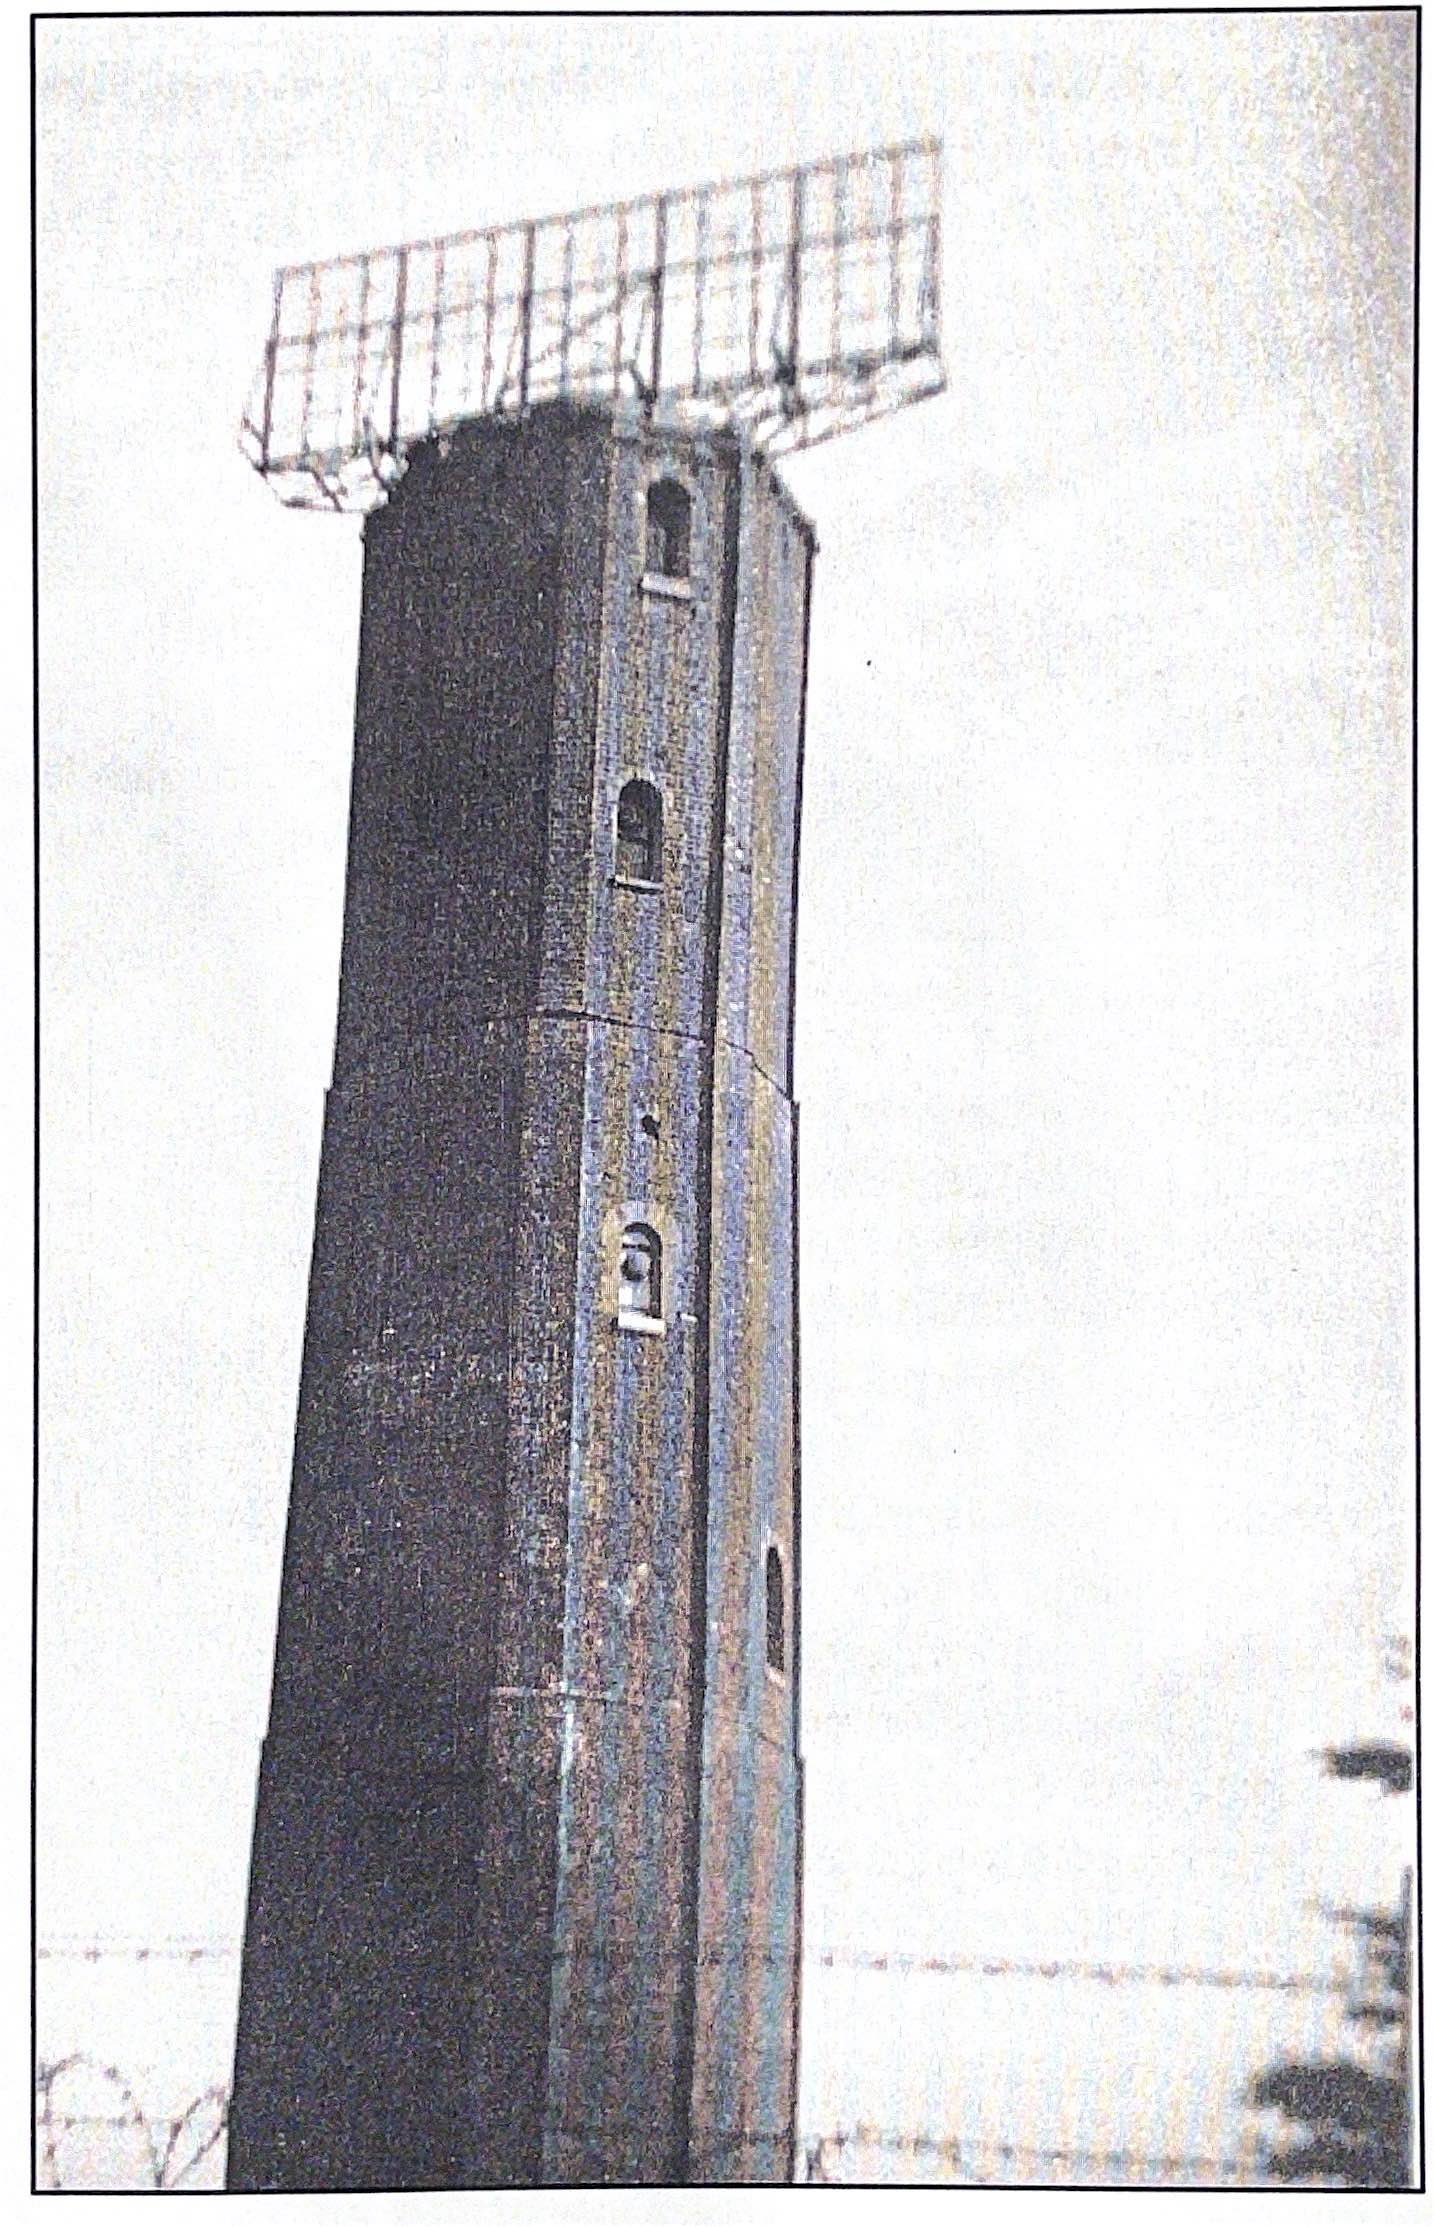 Image of Naze Tower with RADAR beacon on top